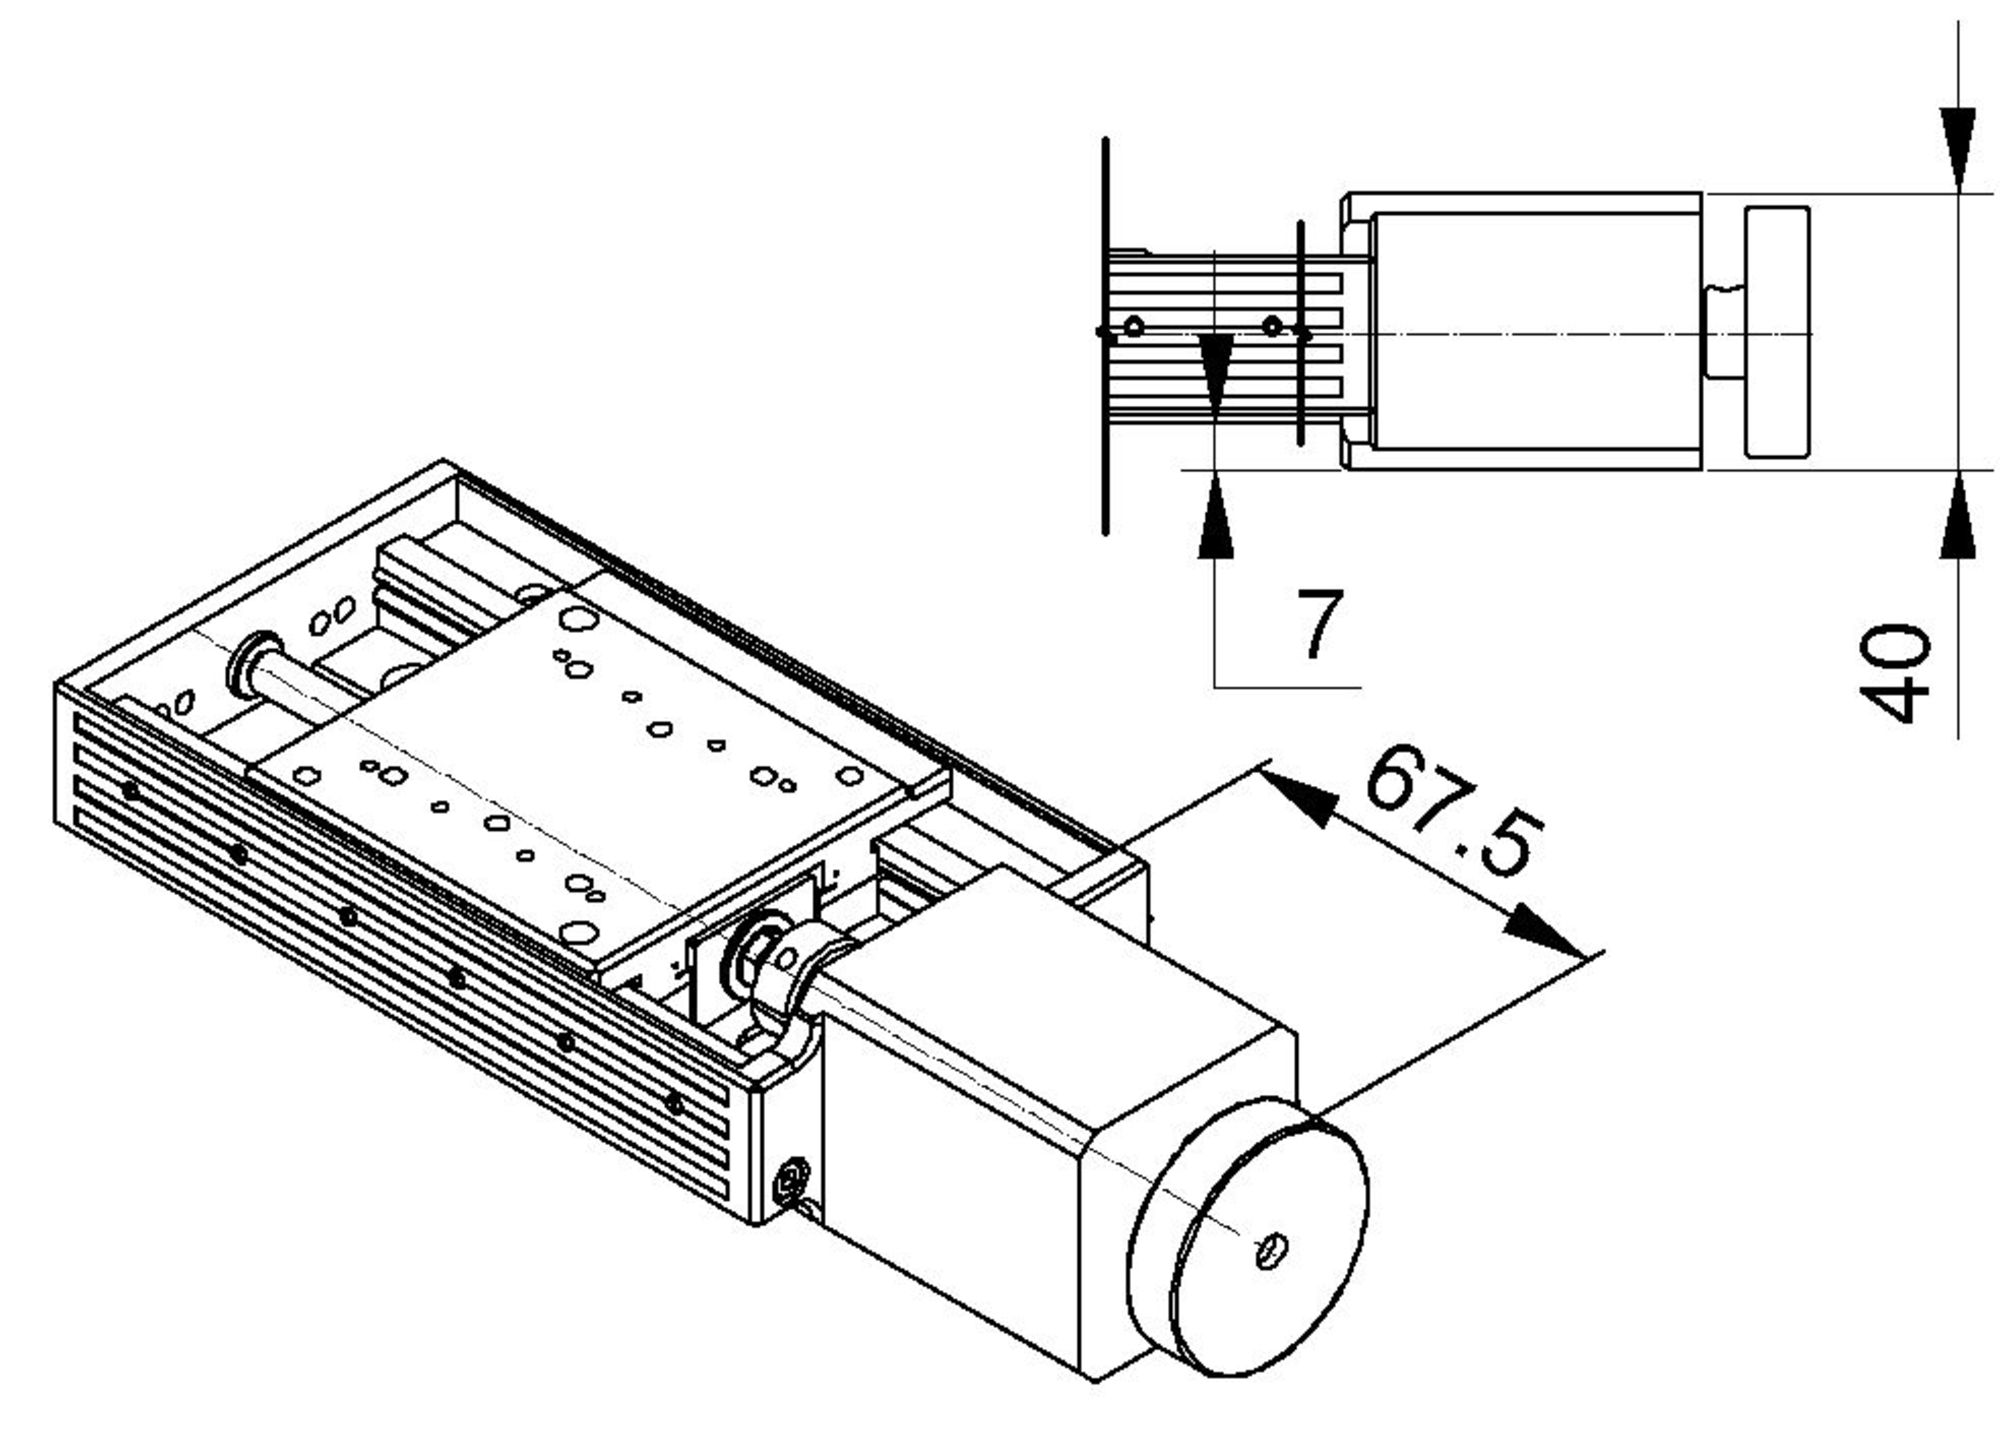 motor drawing at getdrawings free for personal use motor Motor Control Wiring Diagrams 2000x1431 vt 80 linear stage